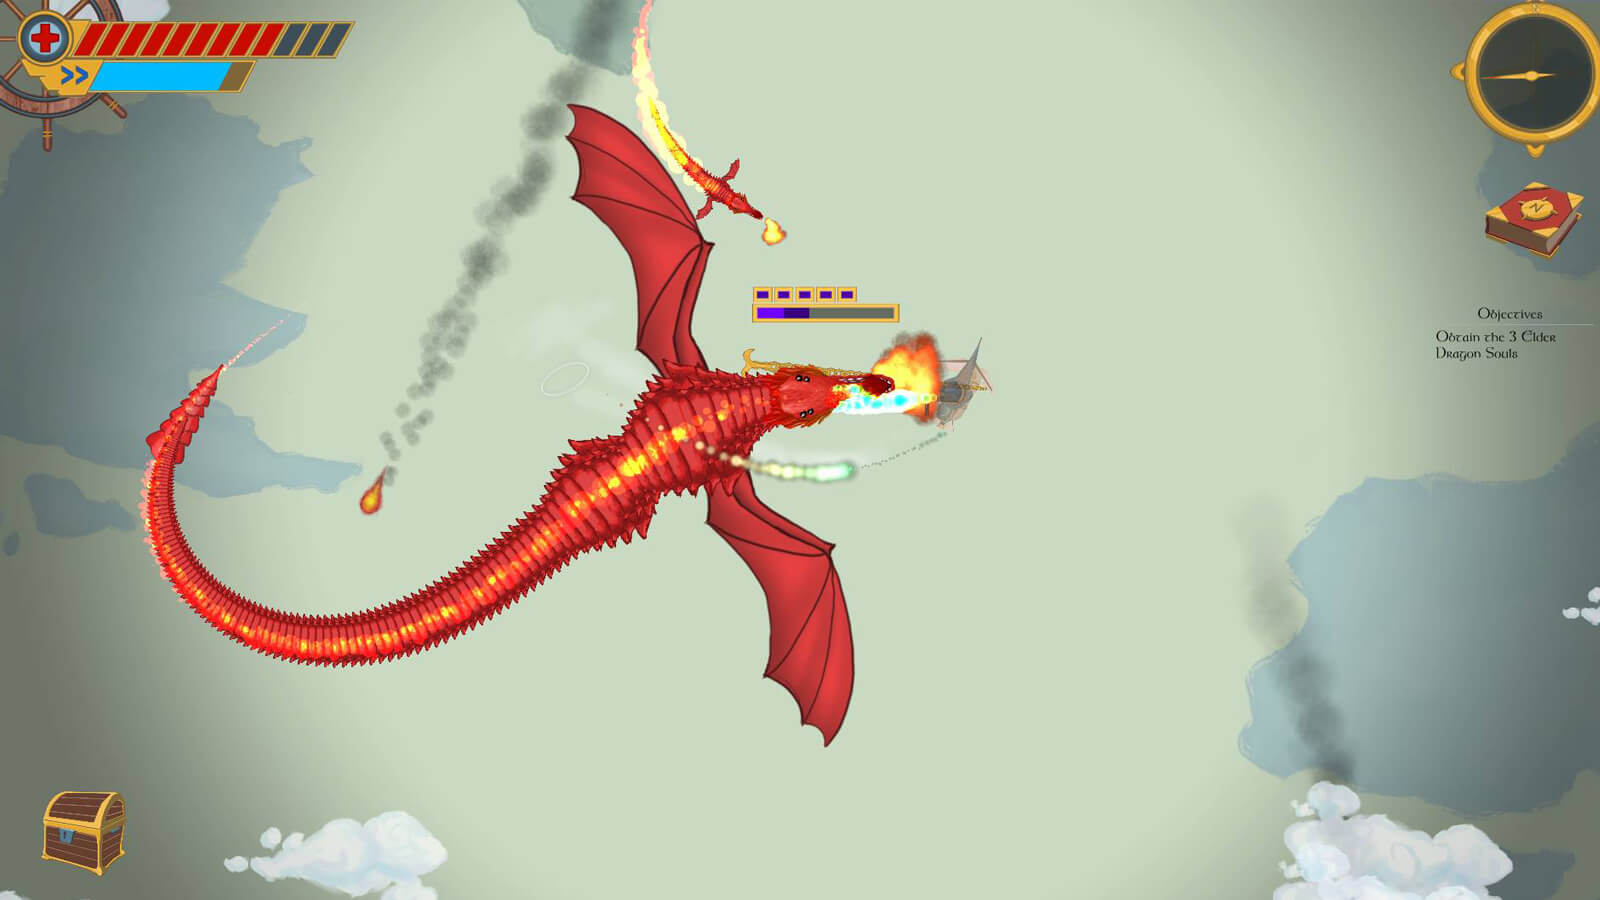 A red dragon breathing fire flies next to a much smaller red dragon also breathing fire, both attacking your airship.